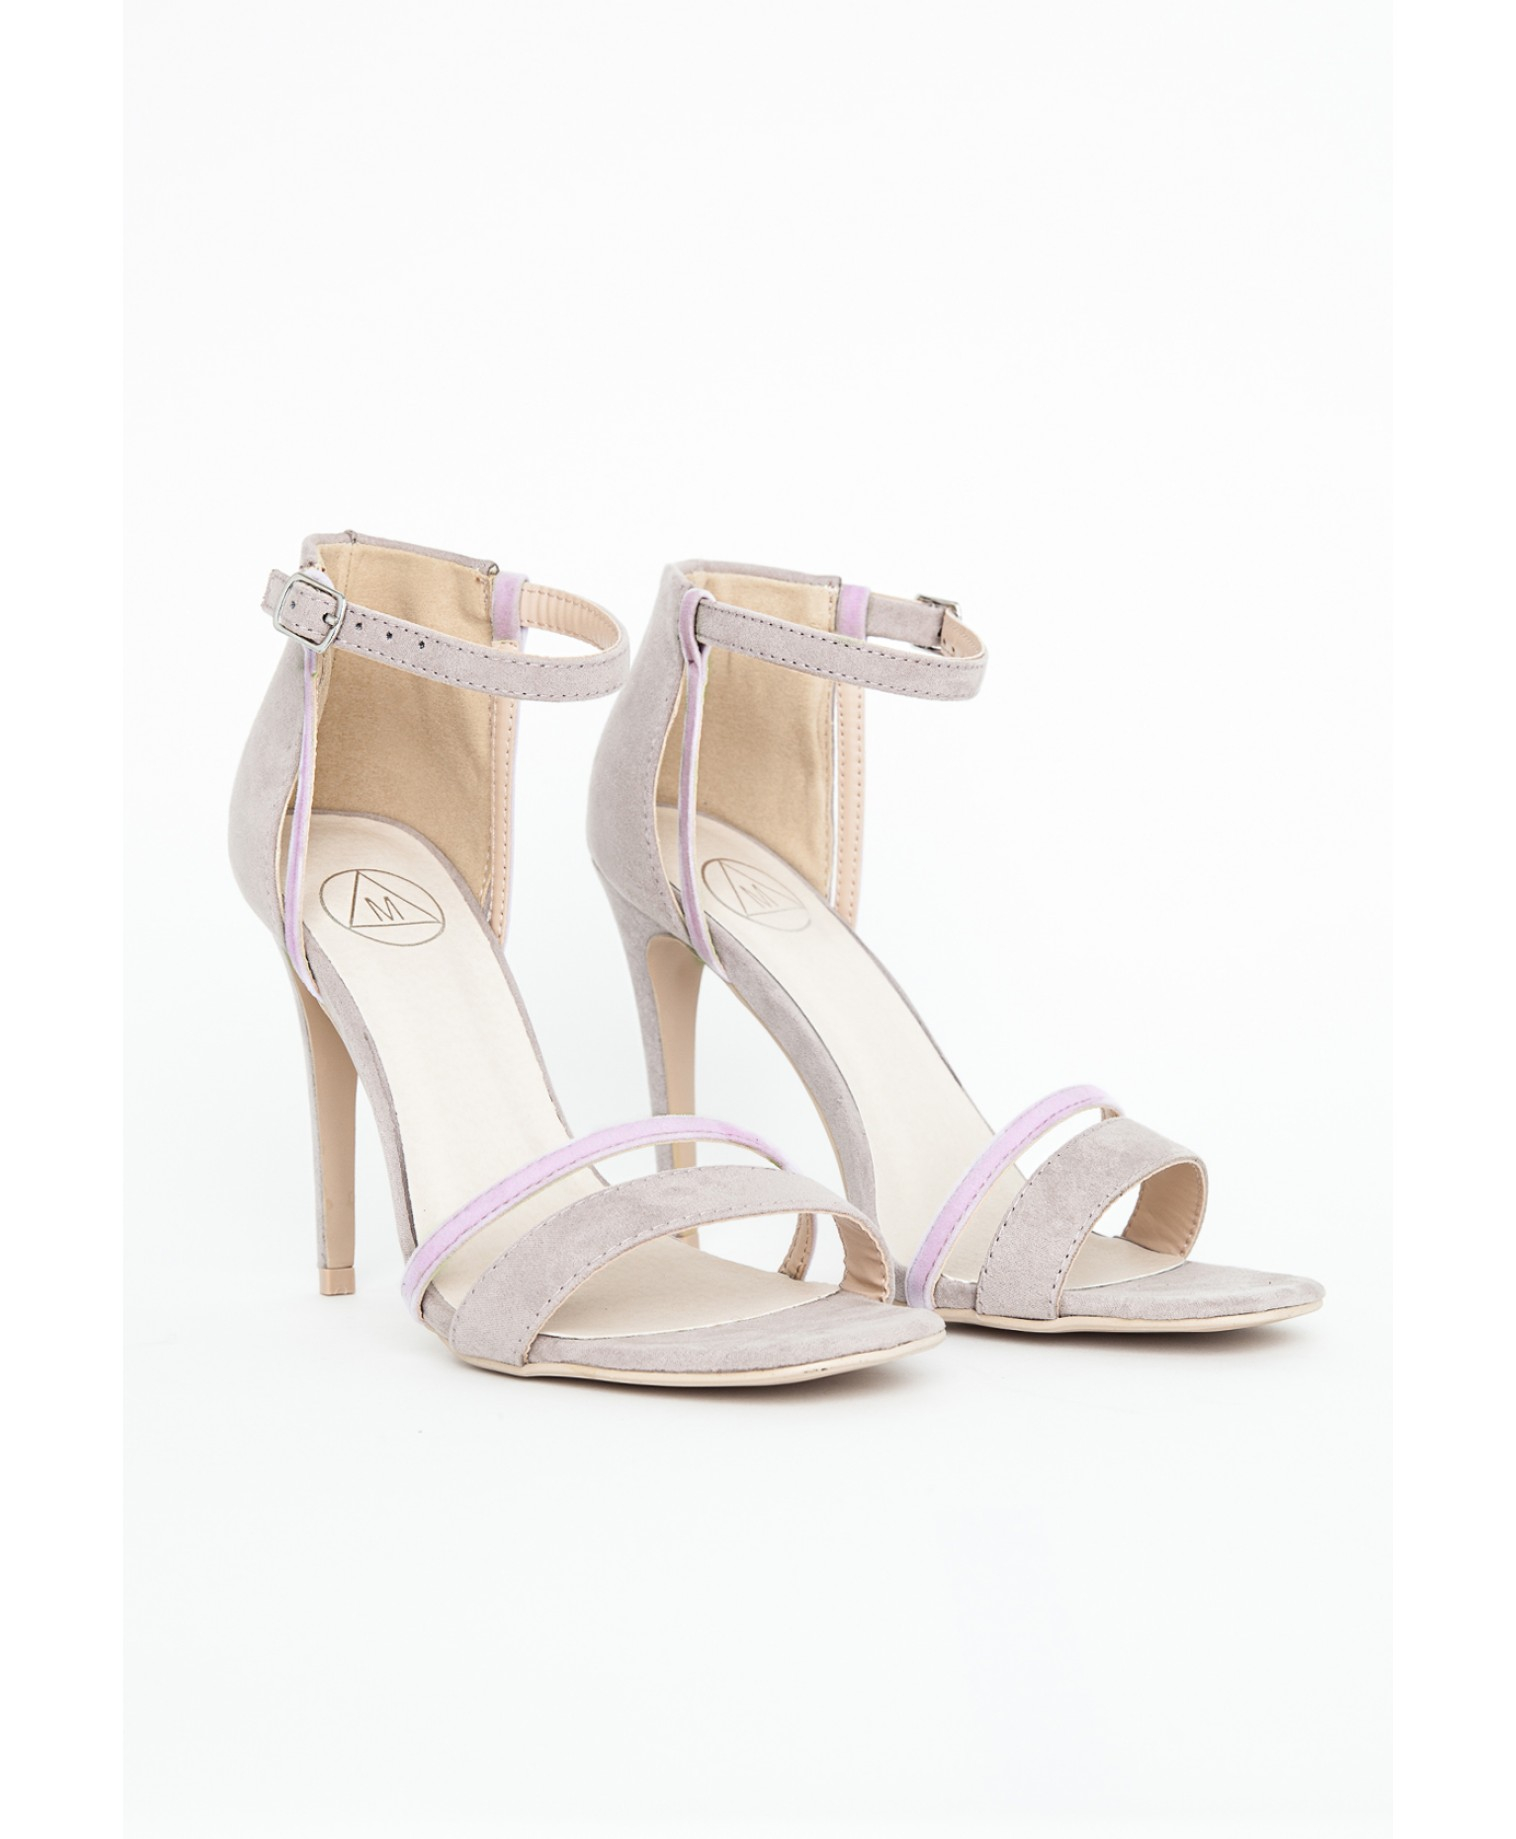 Lyst - Missguided Victoria Grey Contrast Strappy Heeled Sandals in ...